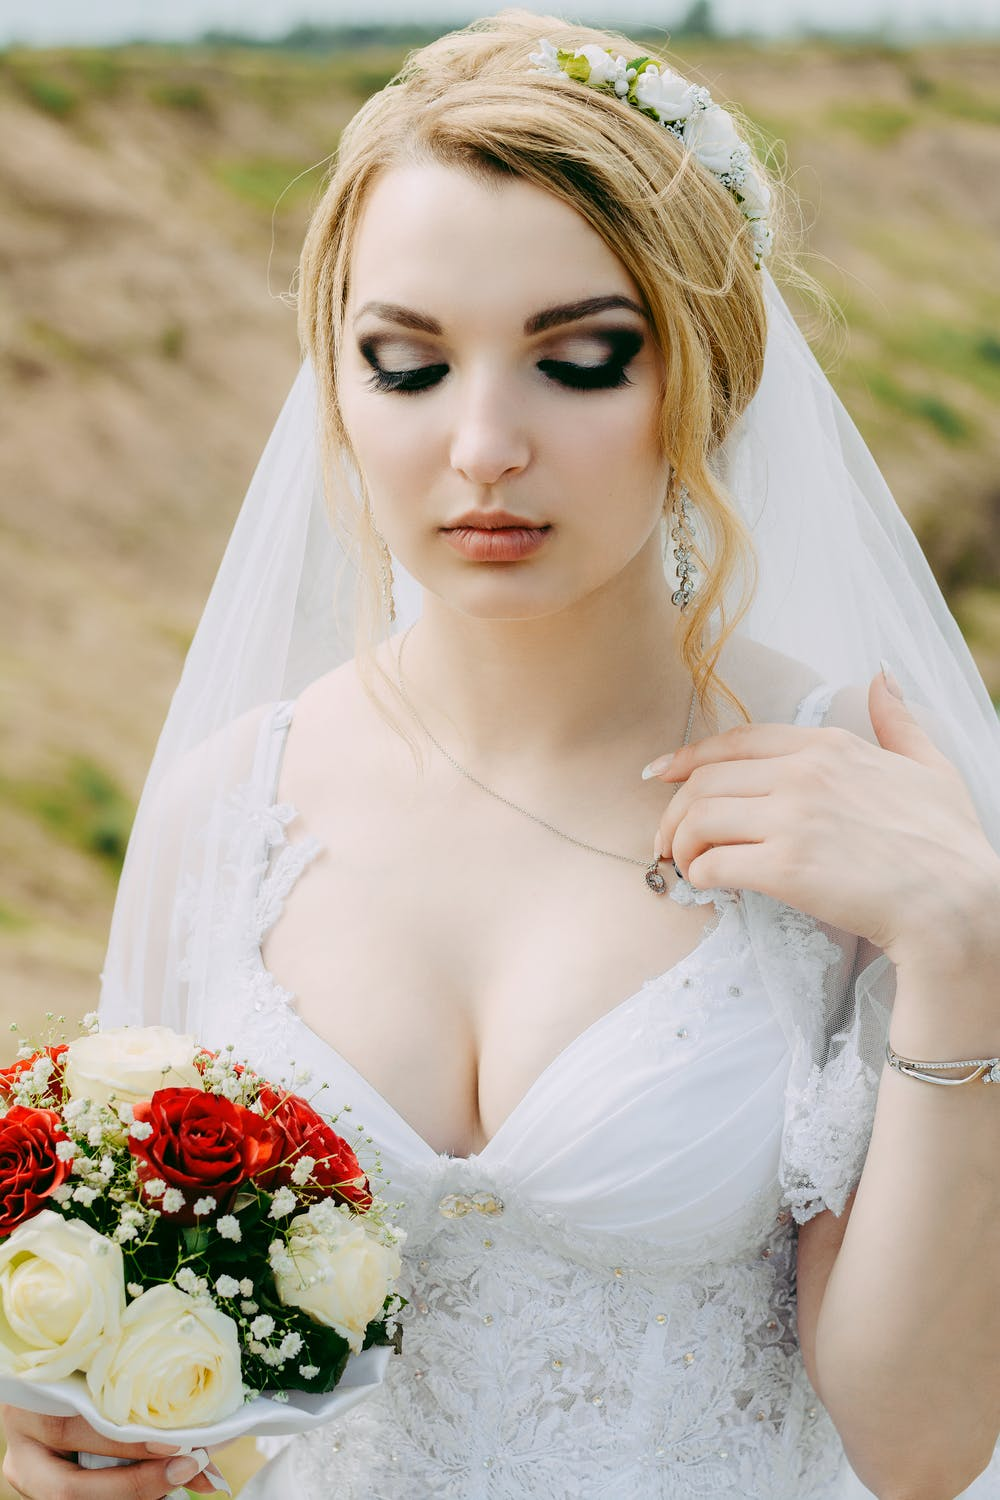 Woman wearing white lace surplice-neck wedding gown. | Photo: Pexels